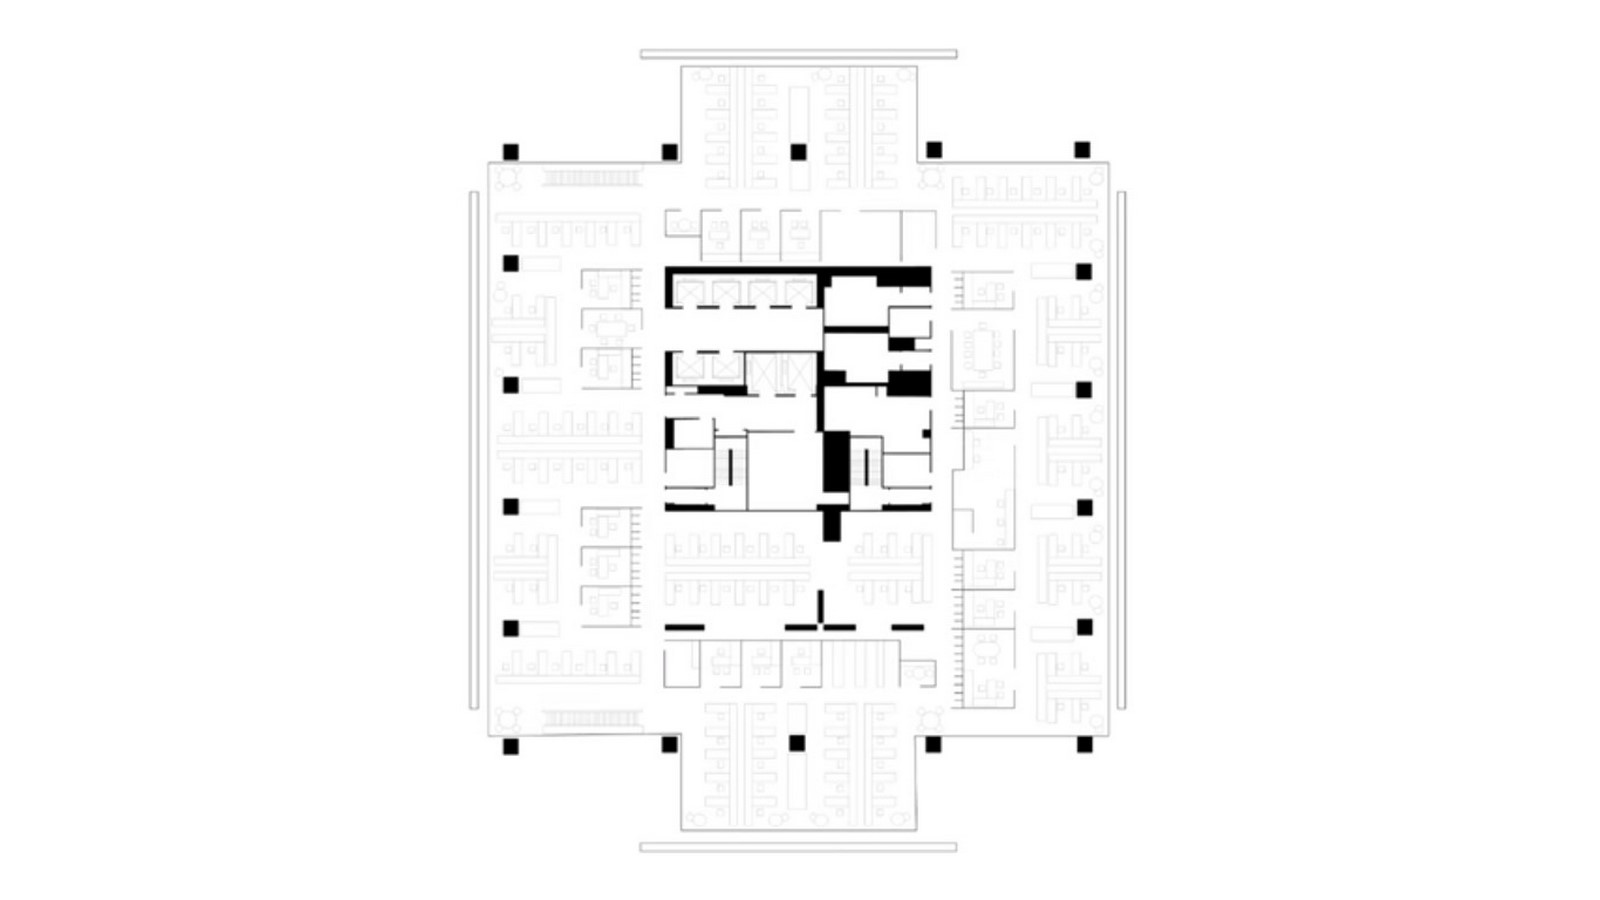 The New York Times Building by Renzo Piano: Inspired by the culture of transparency - Sheet6